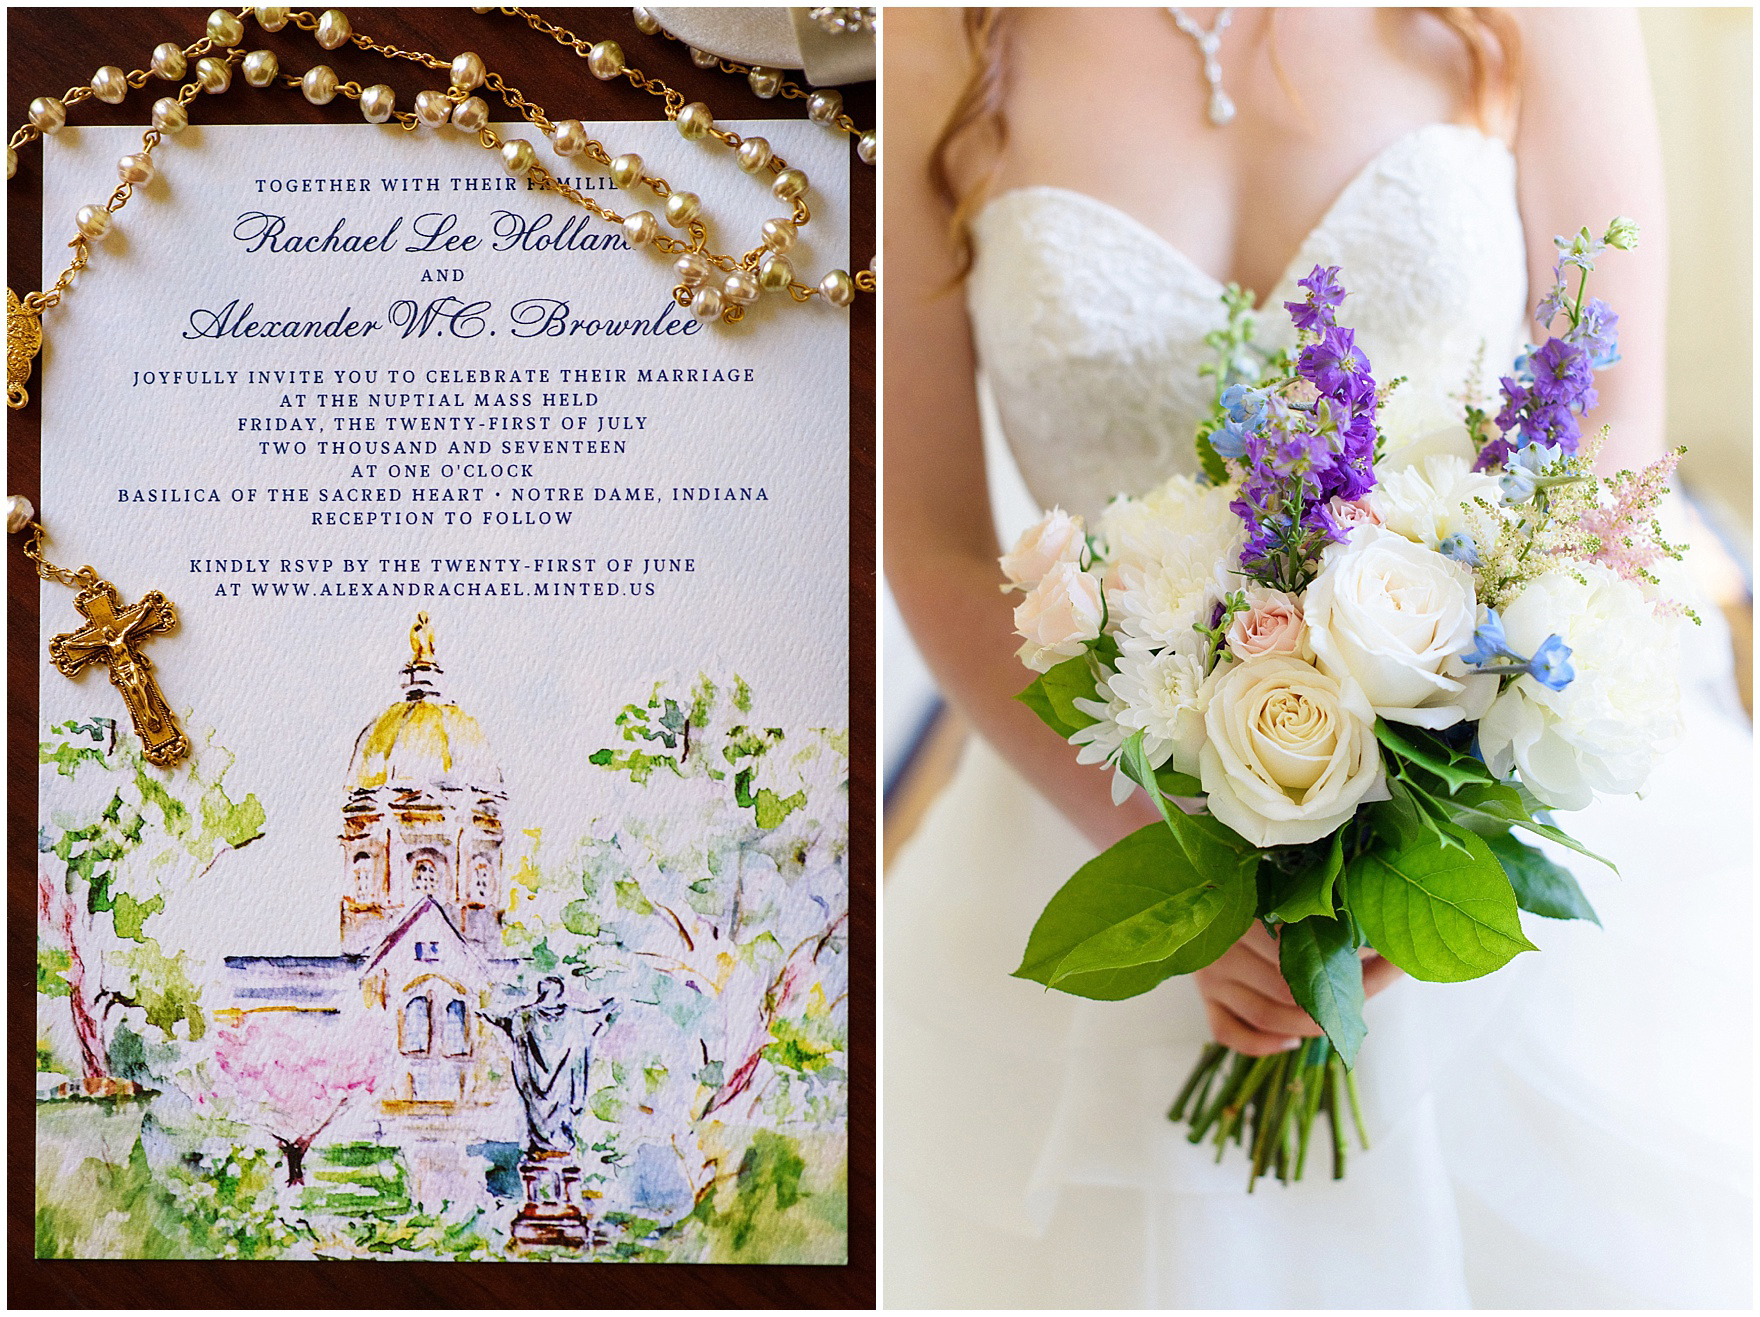 Details of the invitation and bridal bouquet photographed before a University of Notre Dame wedding.